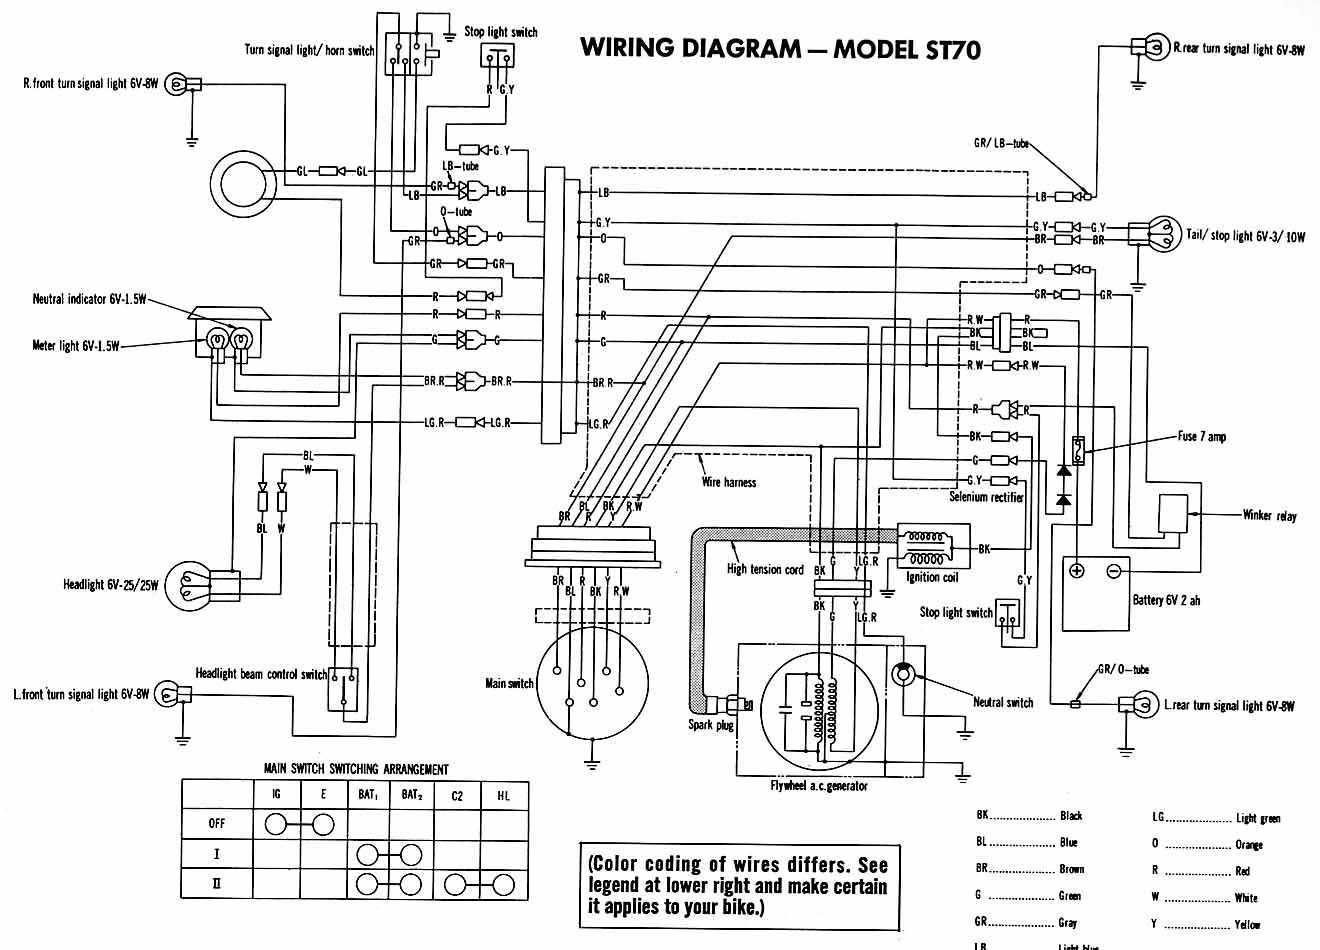 Free Honda Scooter Wiring Diagram Circuit And Hub C70 Passport Motorcycle Harness Complete 2004 Cr V Fuse Box Engine Image Stator